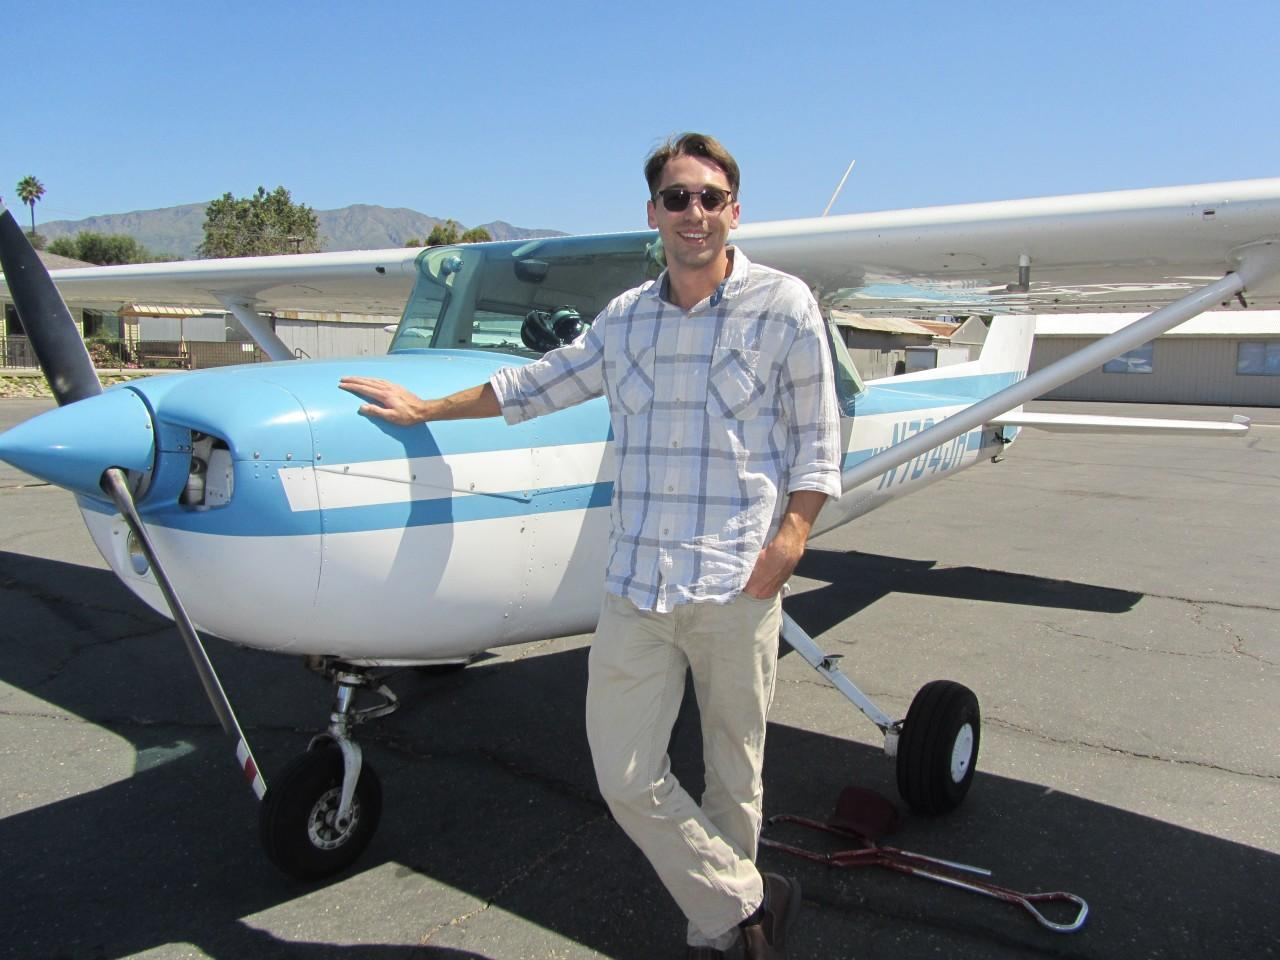 First Solo - Jonathan Patrick